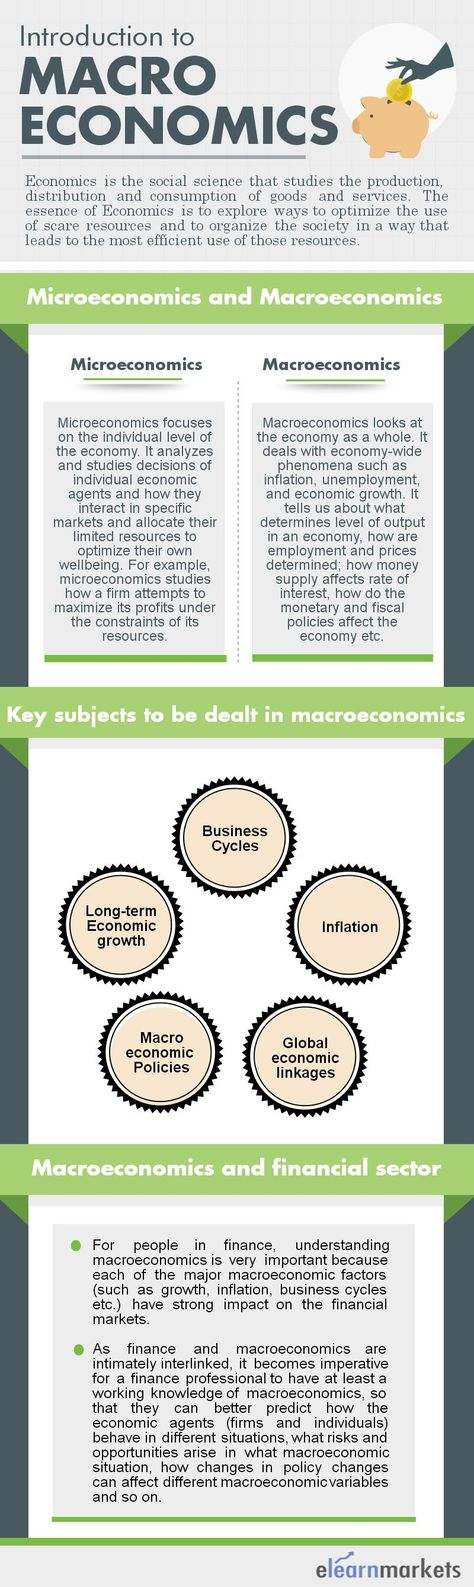 analyse how microeconomic policies can be